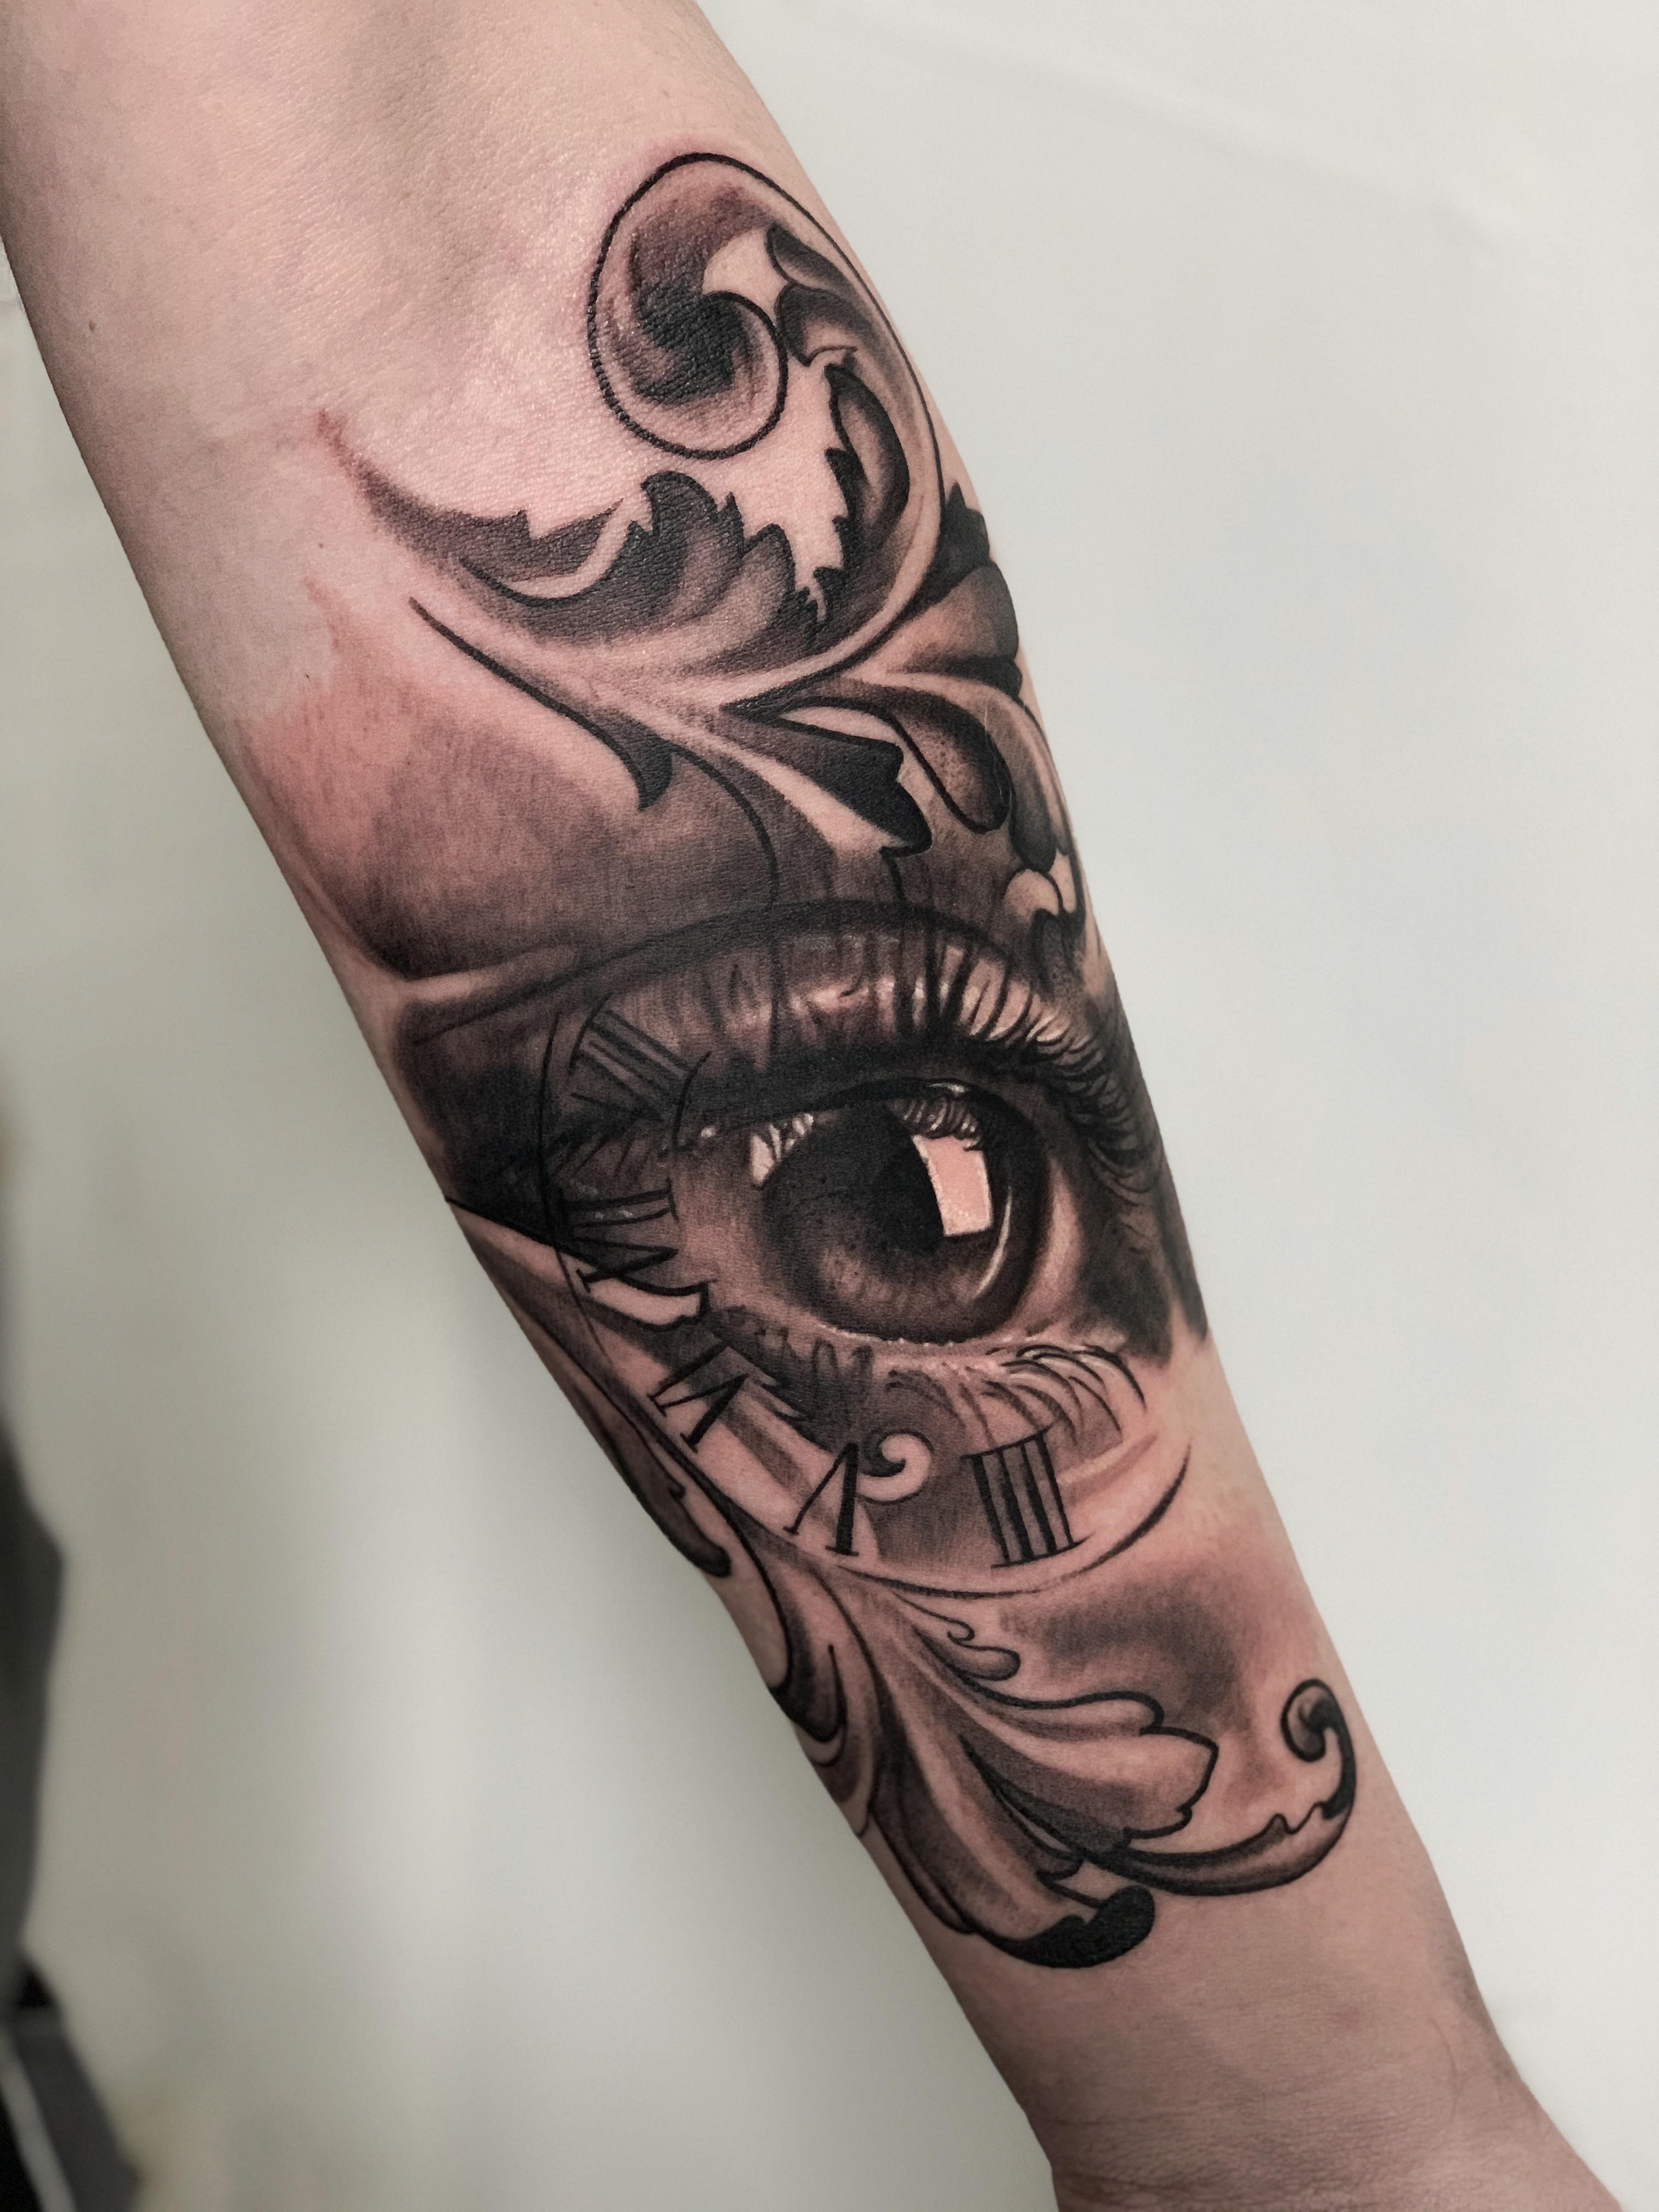 realistic eye tattoo with clock and ornamental designs done in kitzingen